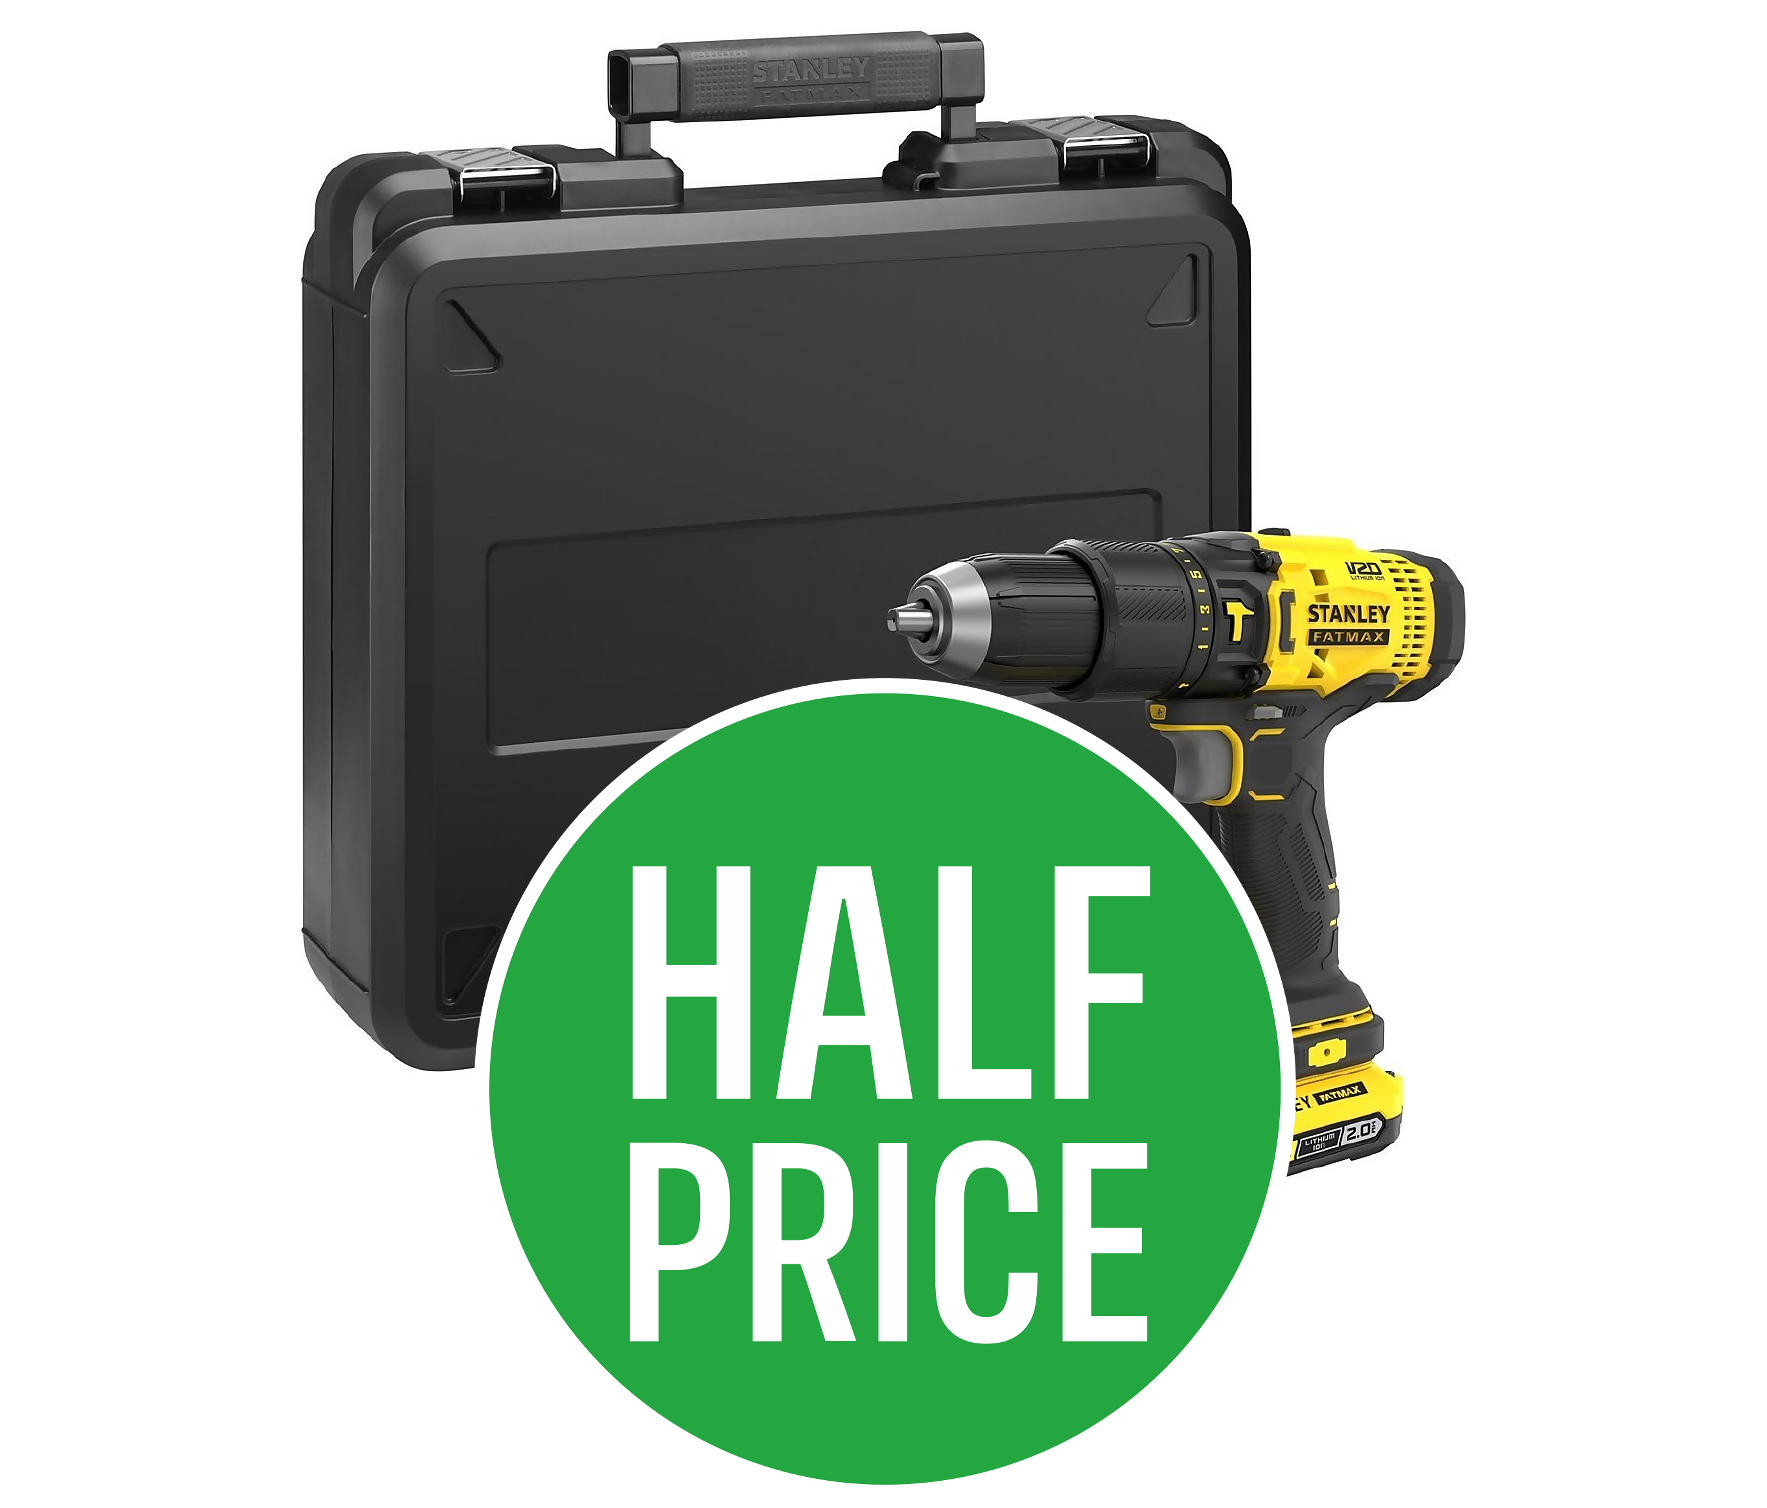 50% off Stanley Fatmax V20 2AH Battery When purchased Stanley Fatmax V20 Cordless Combi Drill with Kit Box